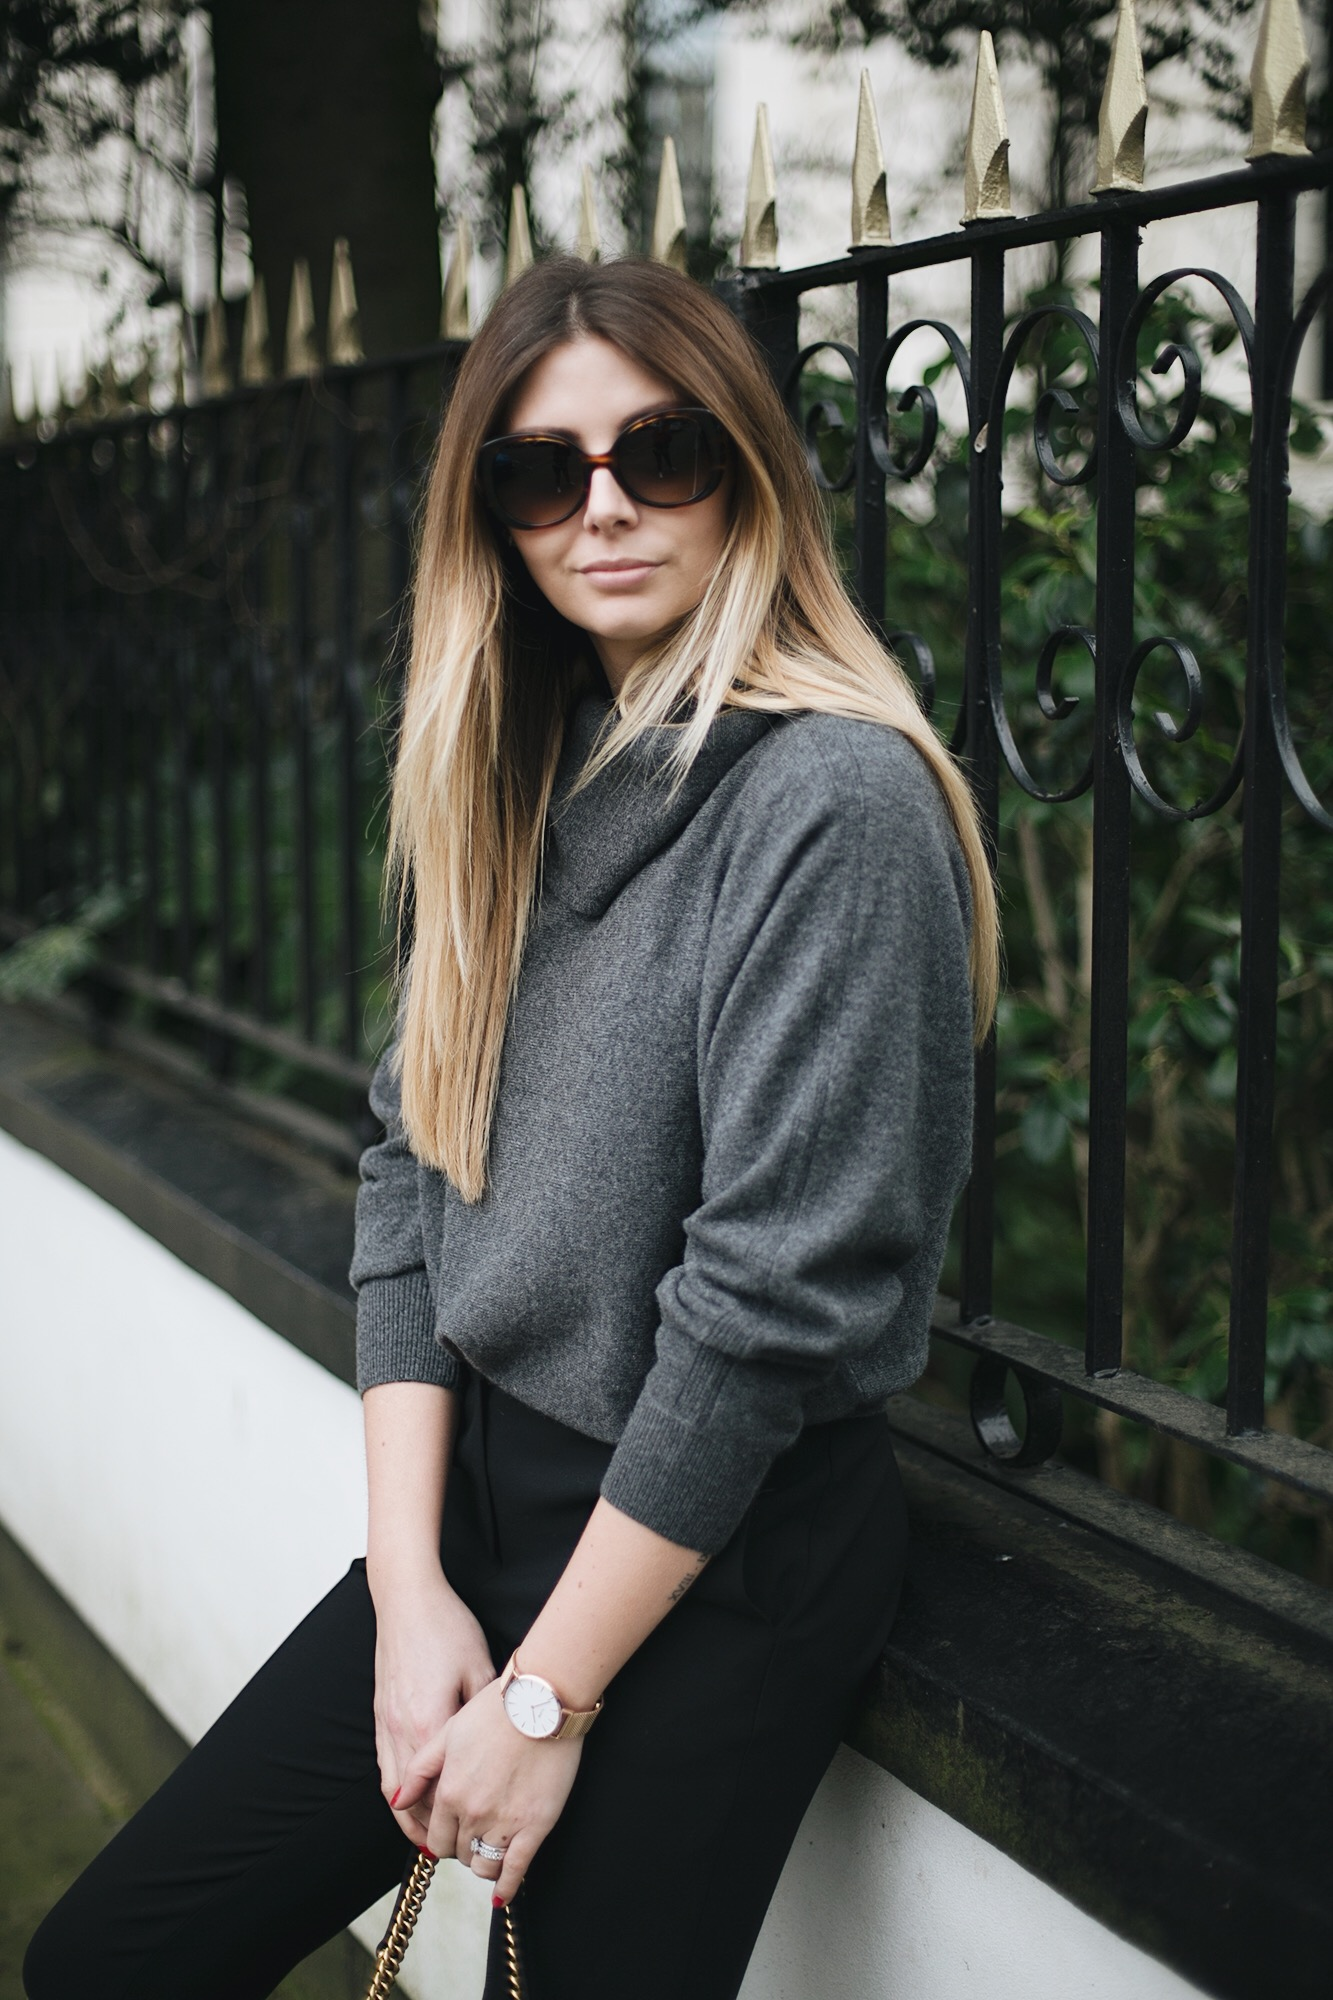 grey cashmere cowl neck sweater, black tailored trousers, oversized sunglasses